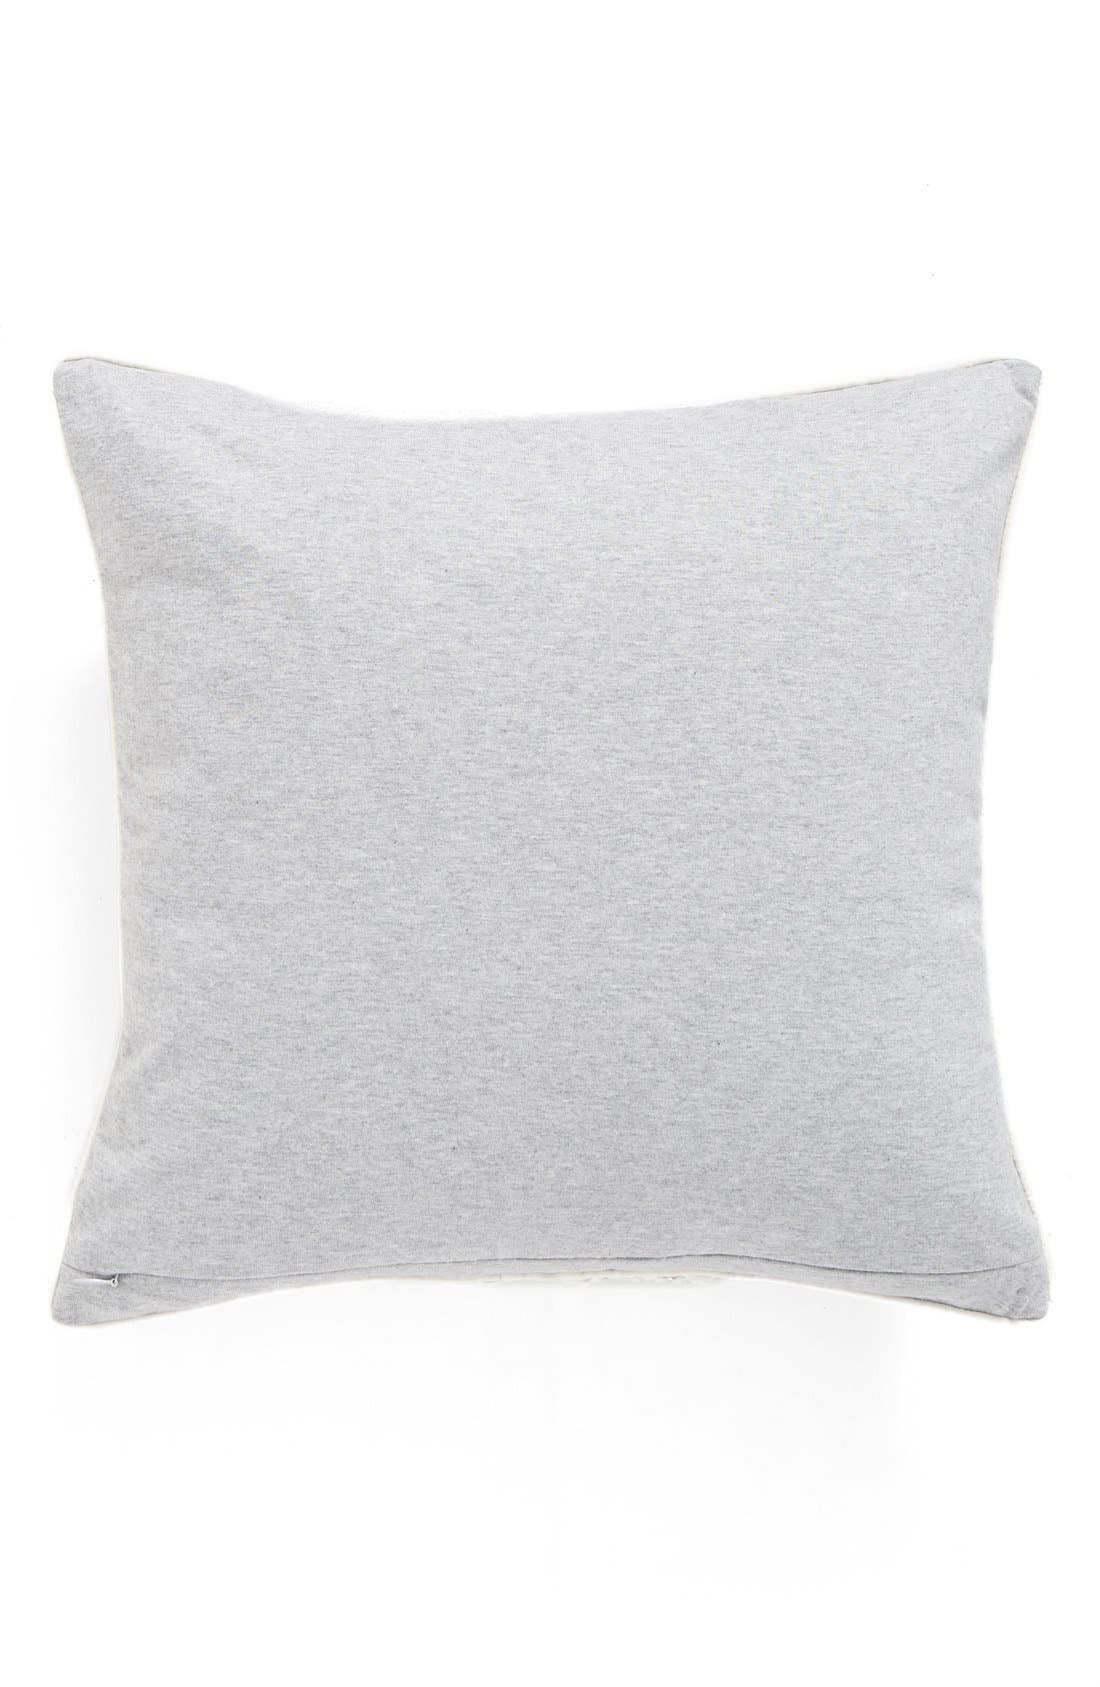 Snowflake Jersey Accent Pillow,                             Alternate thumbnail 3, color,                             020